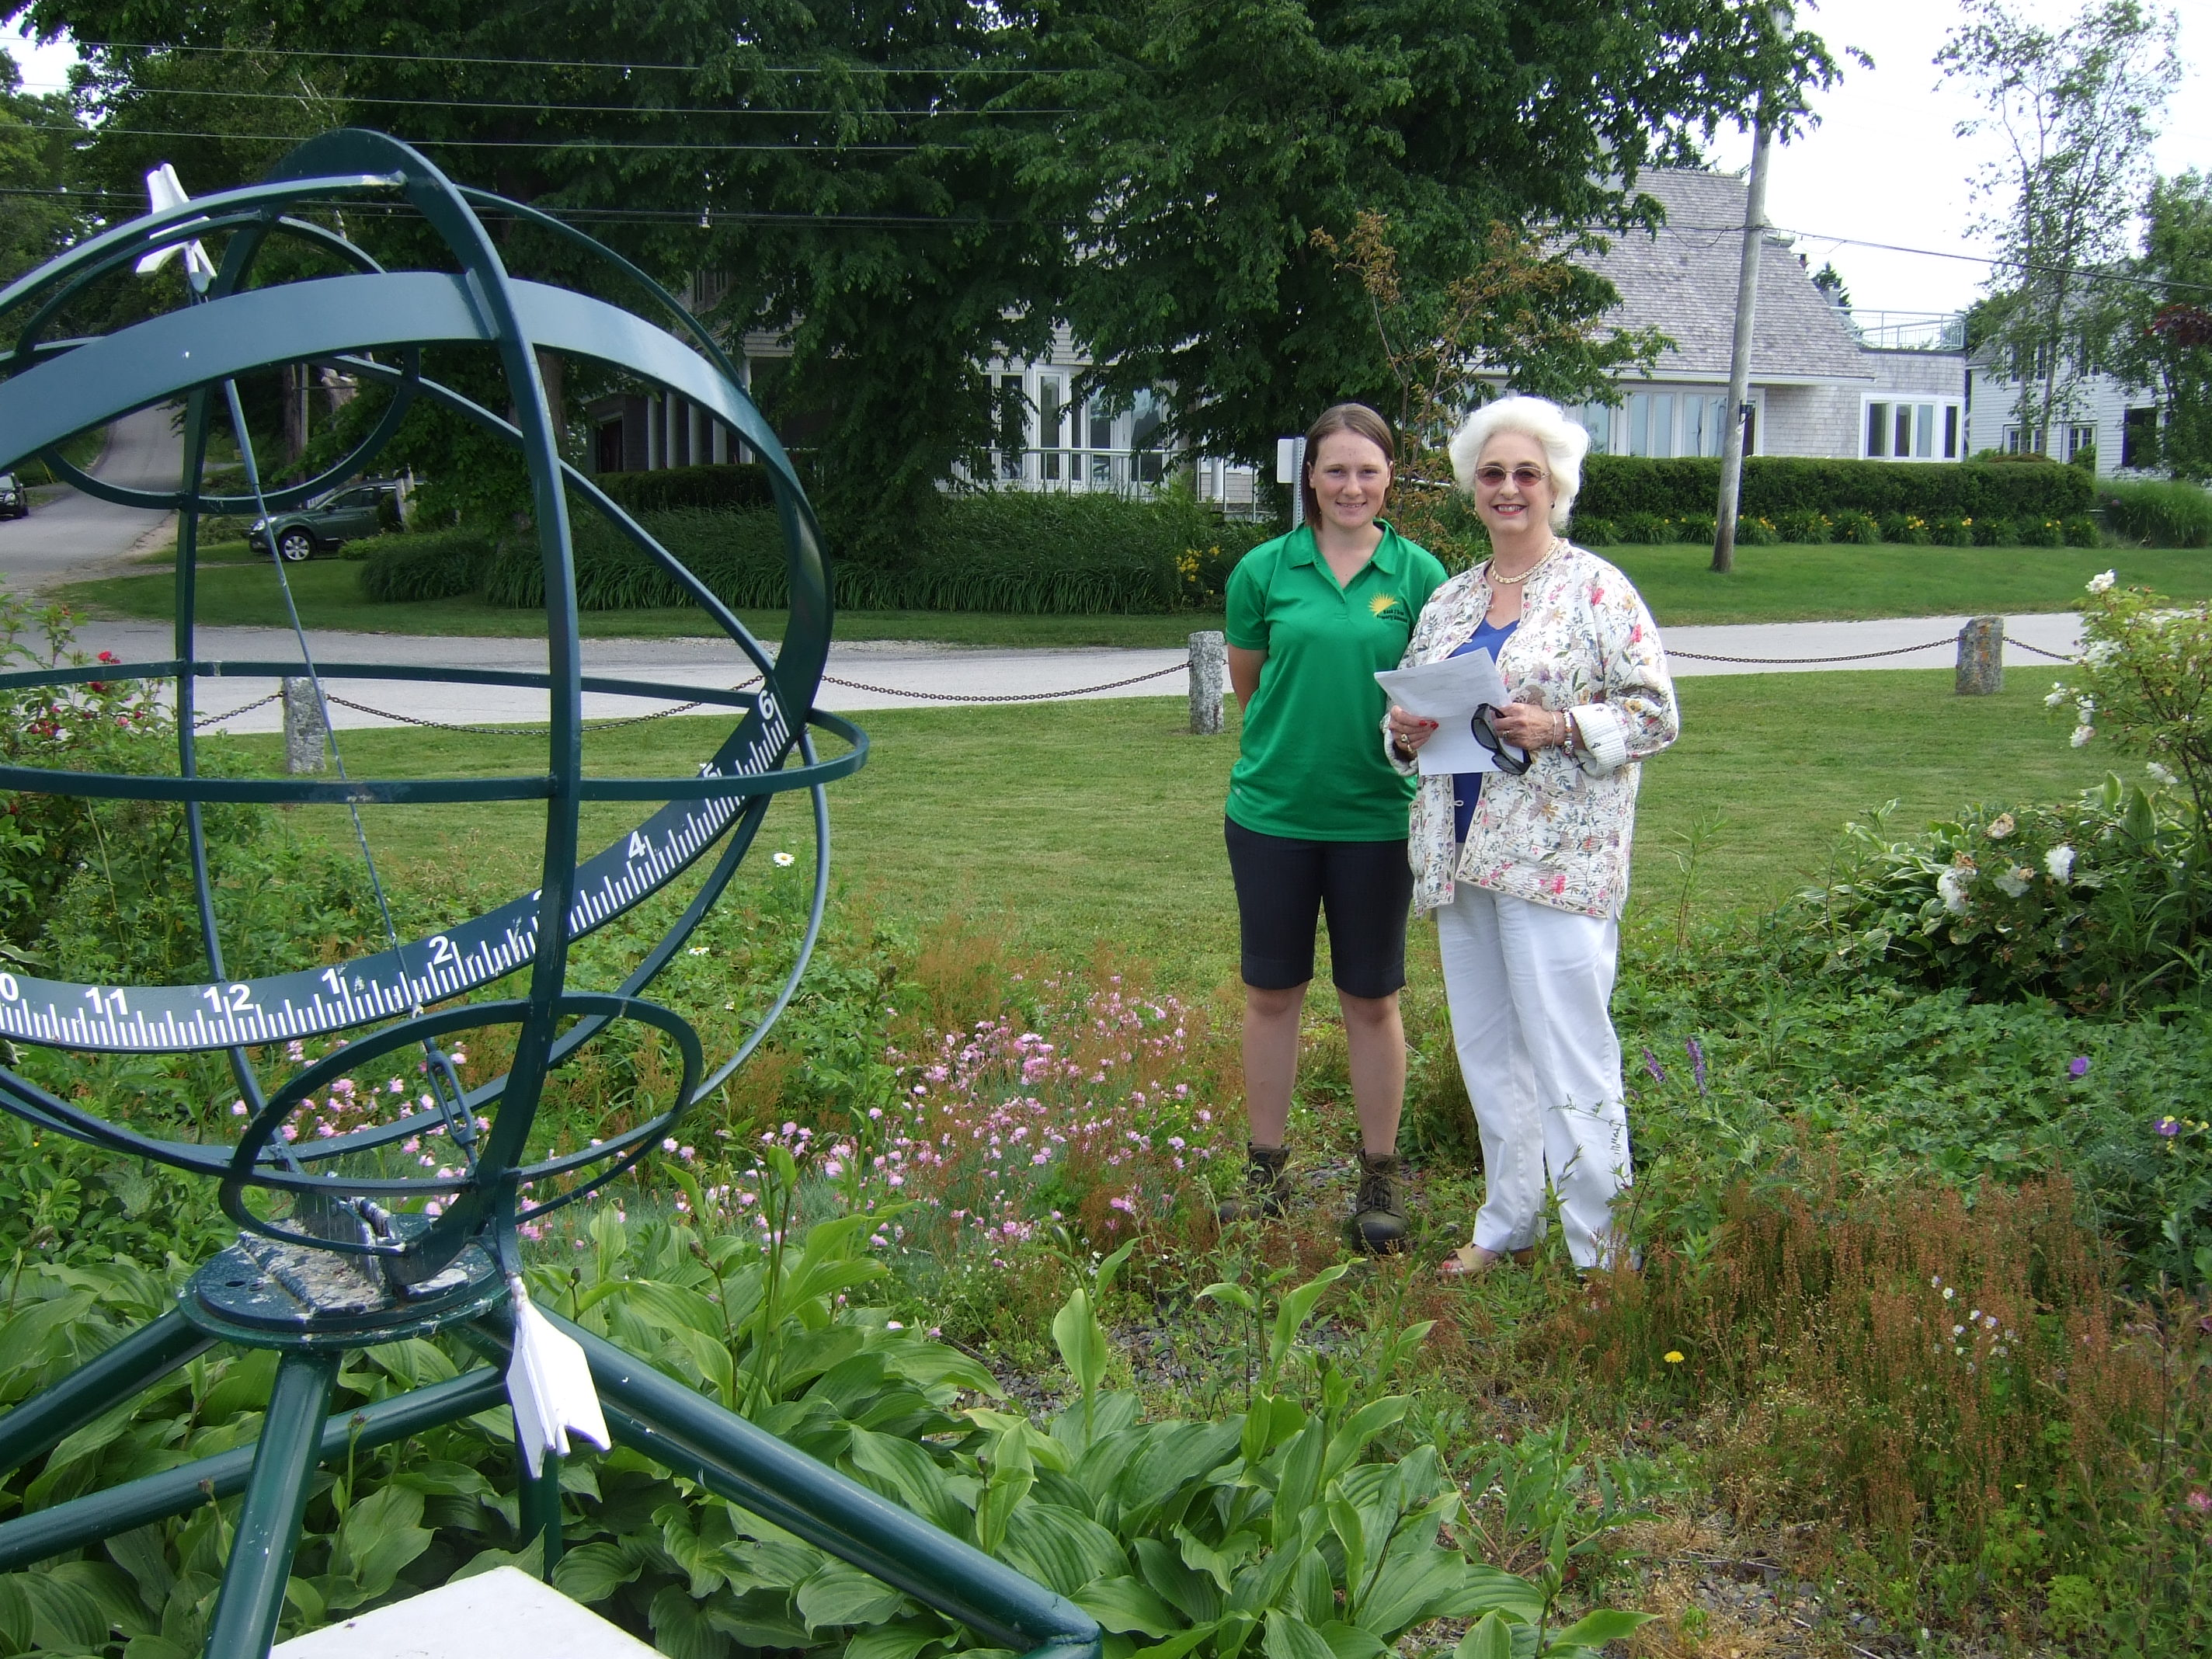 armillary sphere and weedy park